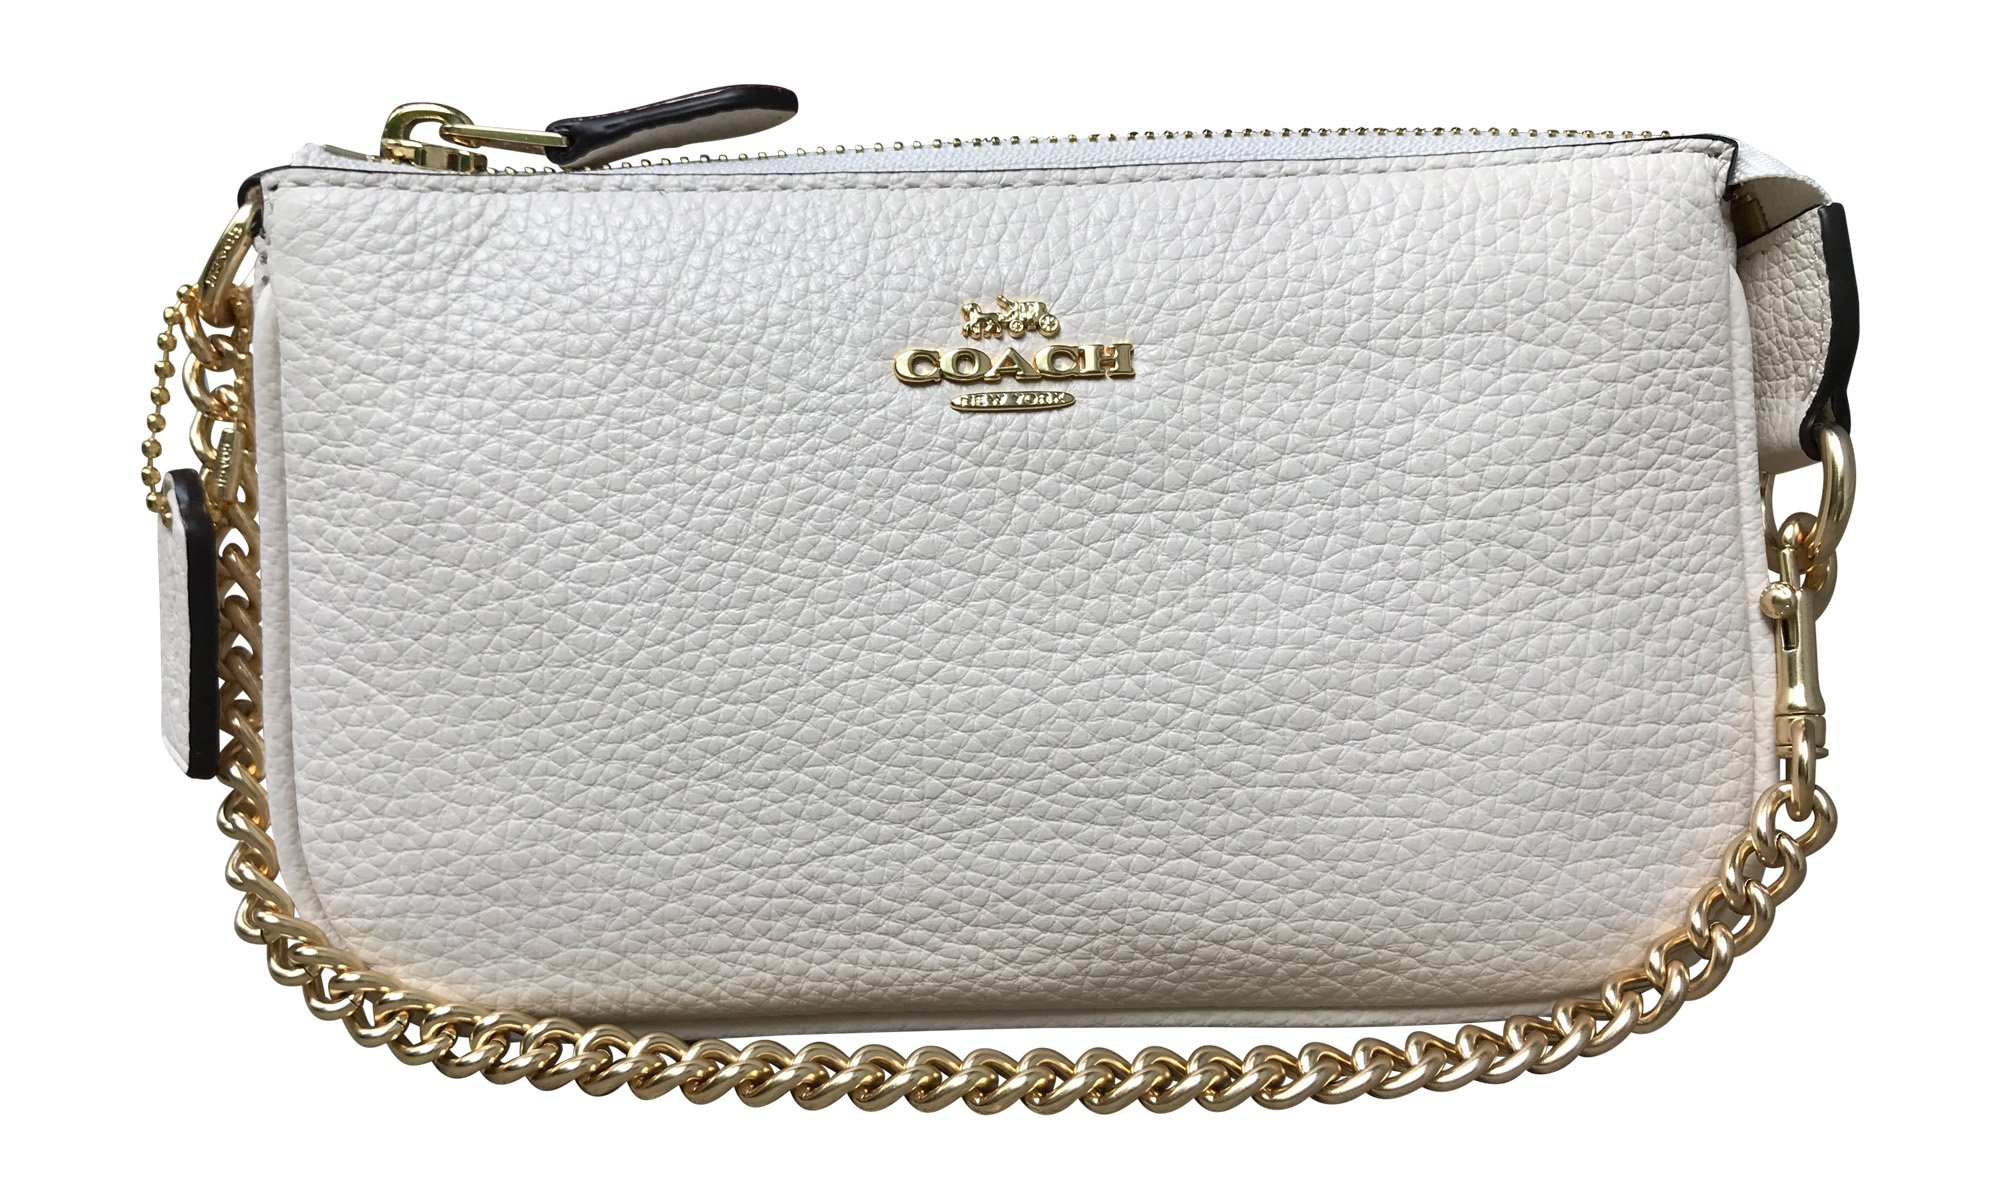 Coach Pebbled Leather Large Wristlet 19, Chalk by Coach